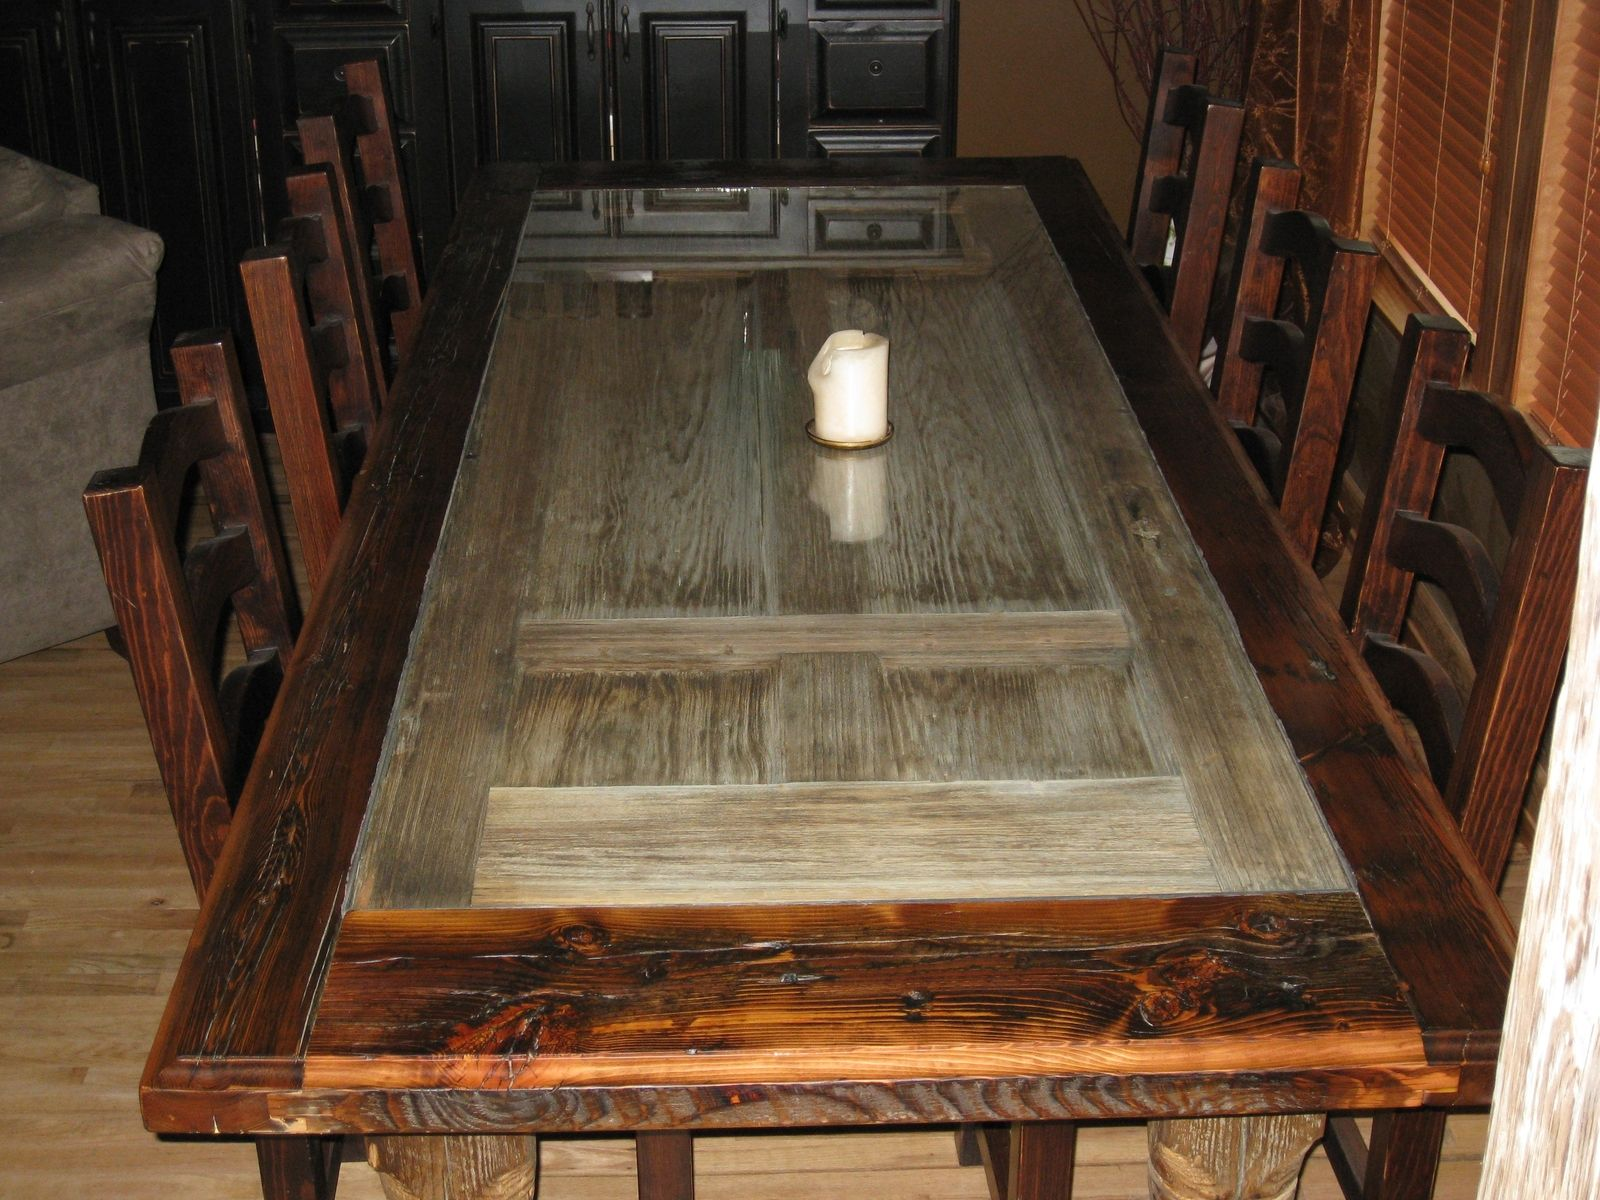 Handmade Reclaimed Barnwood Dining Room Table by Rusty Nail Design ...